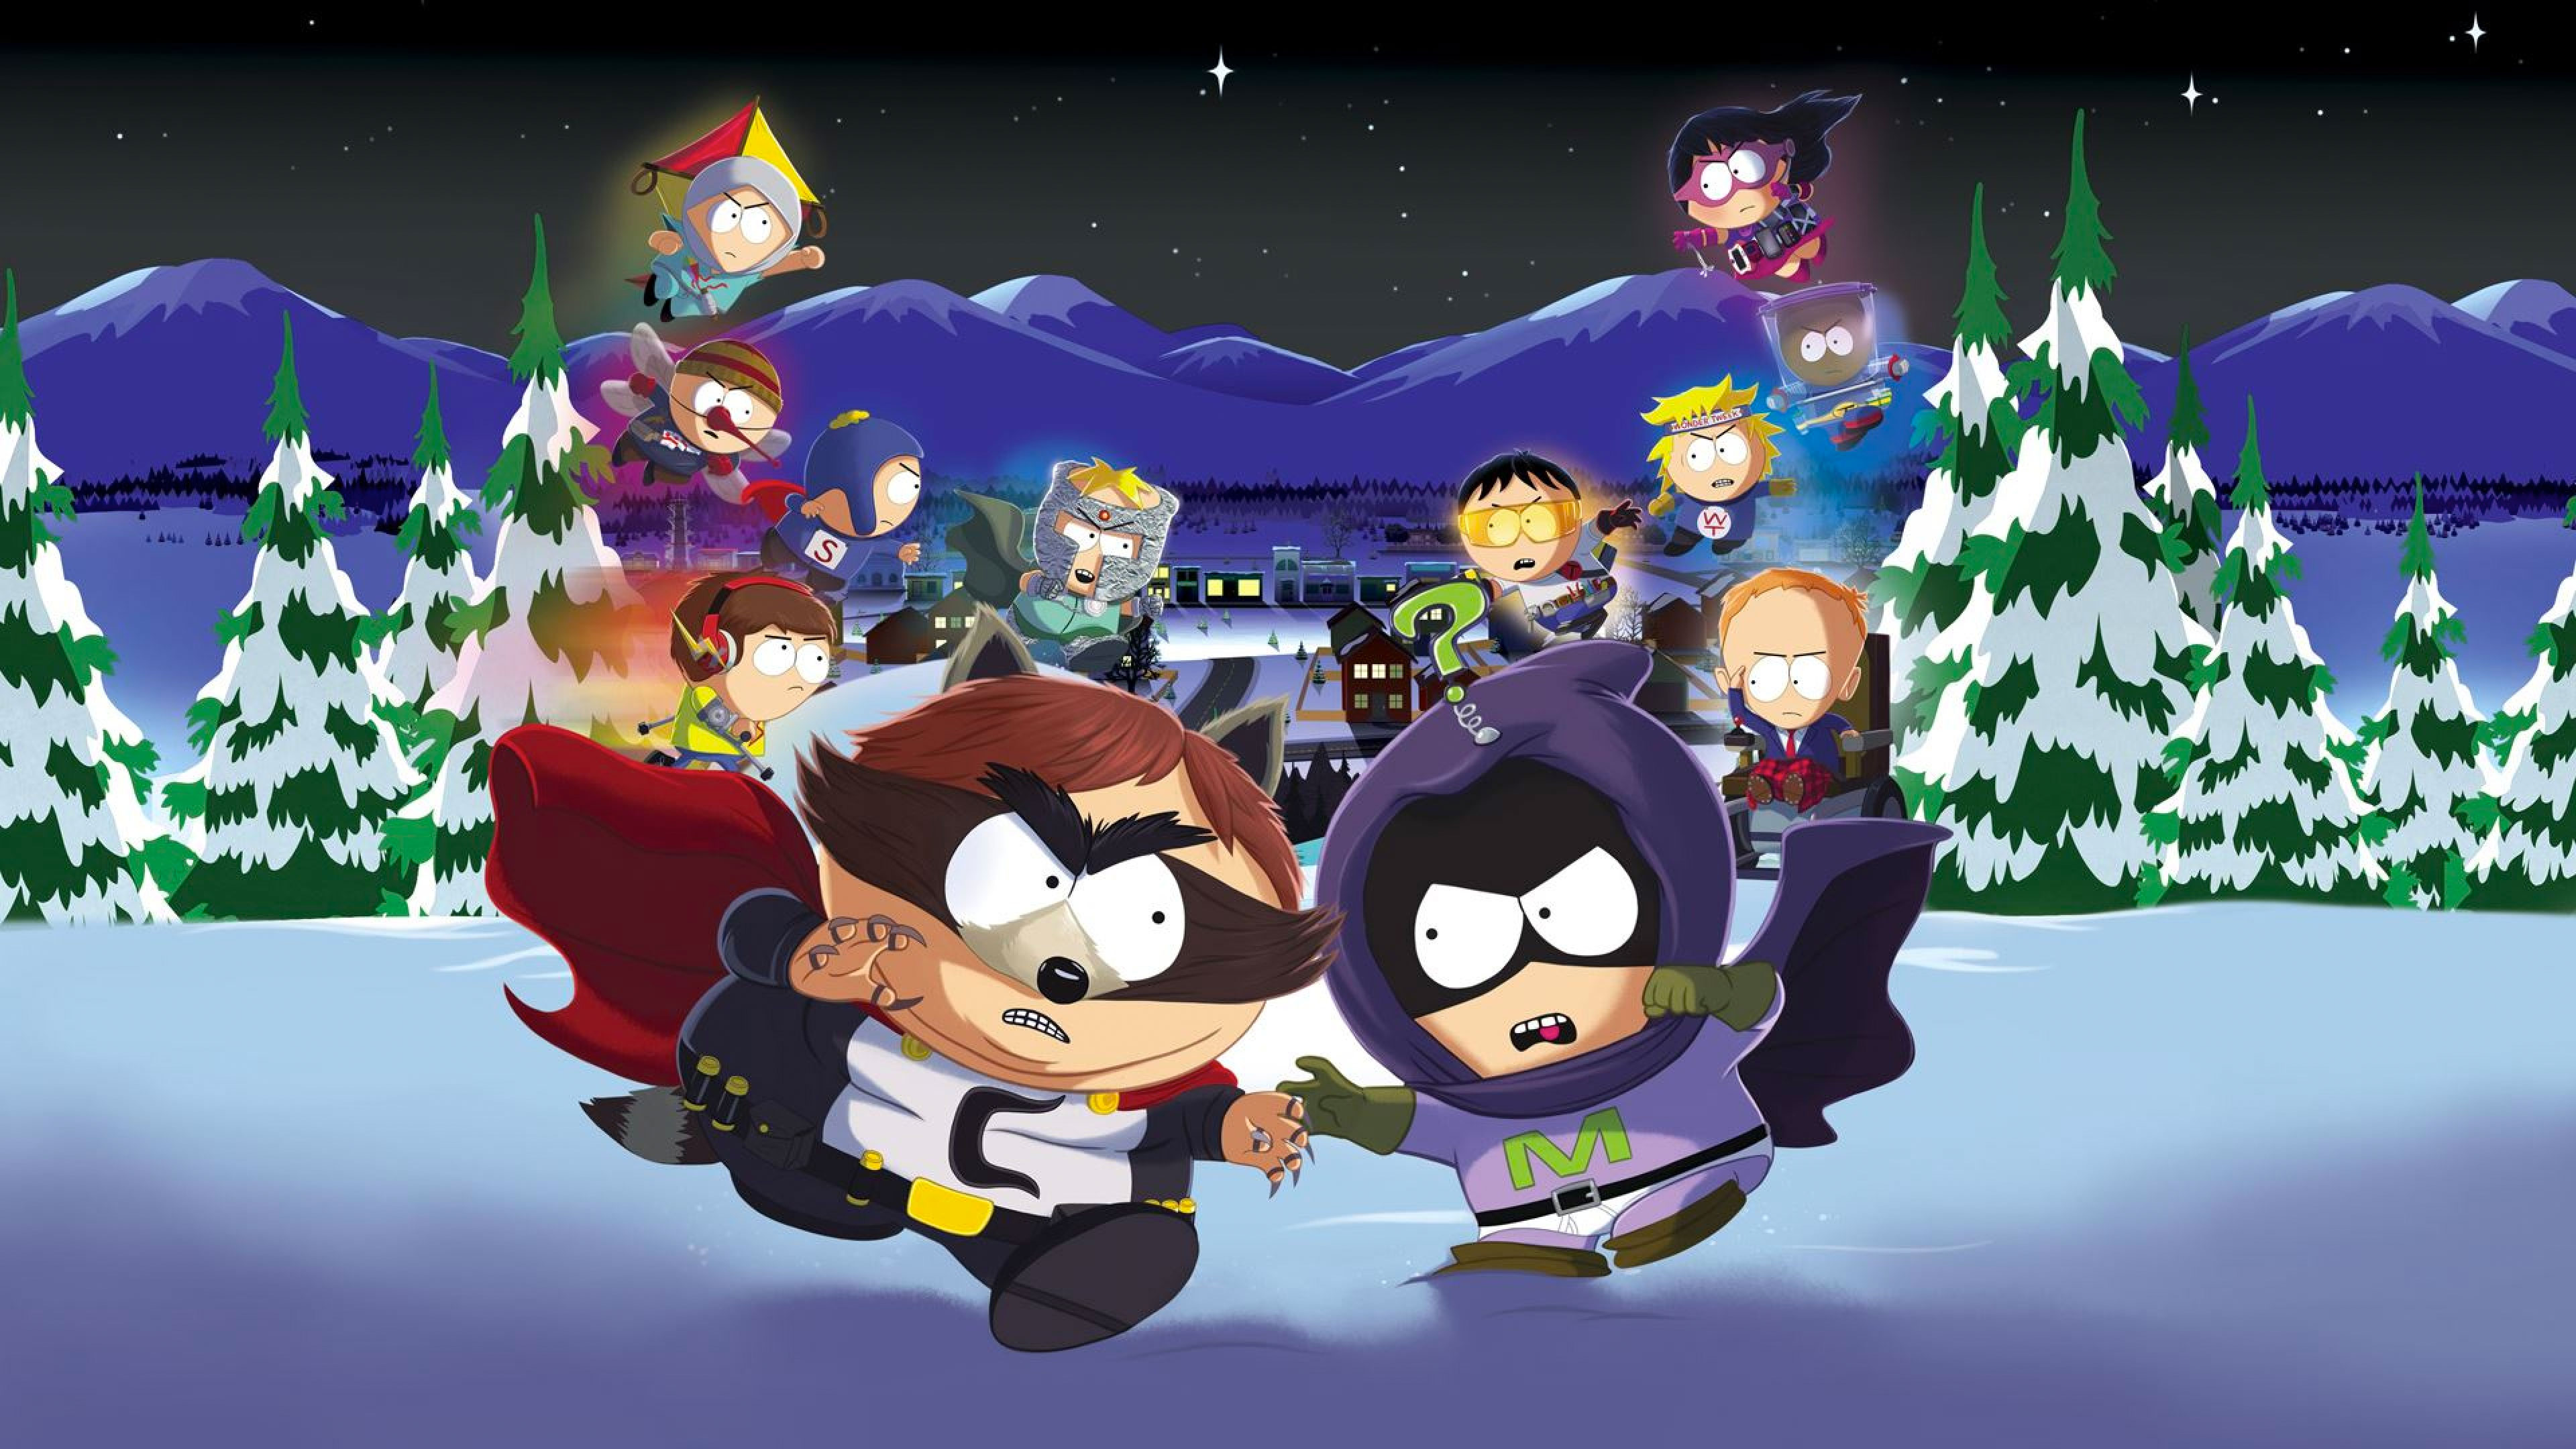 South Park The Fractured But Whole Wallpapers in Ultra HD 4K 3840x2160